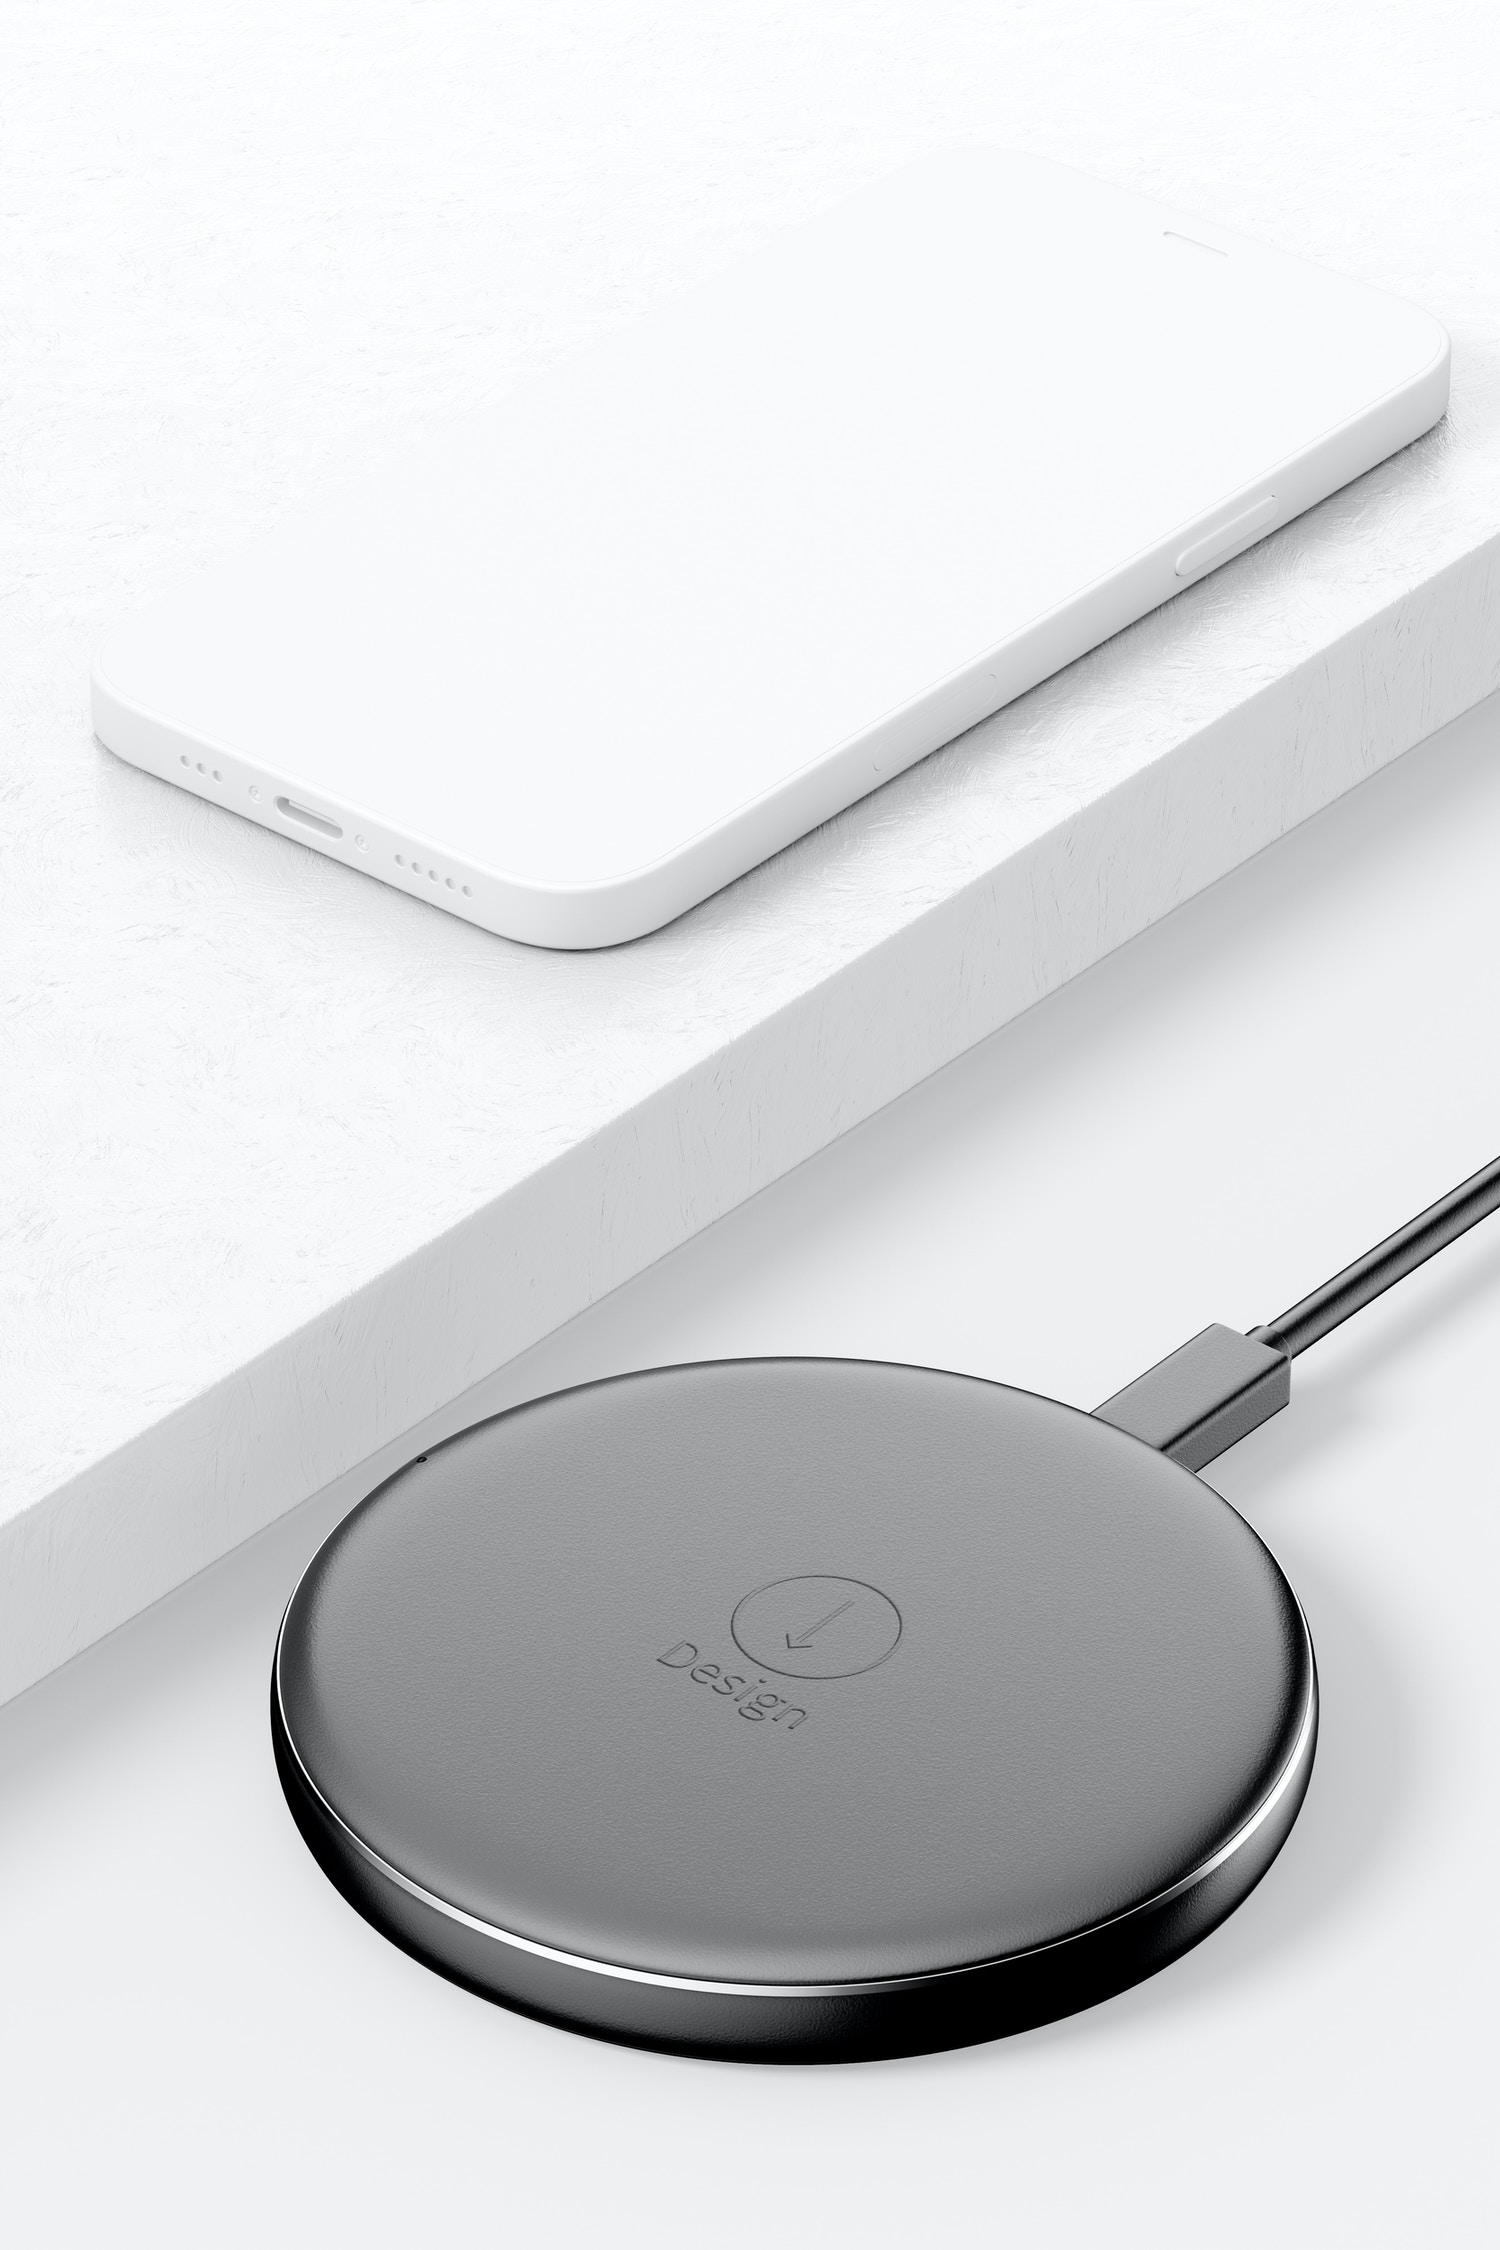 Wireless Charger Mockup, Perspective View